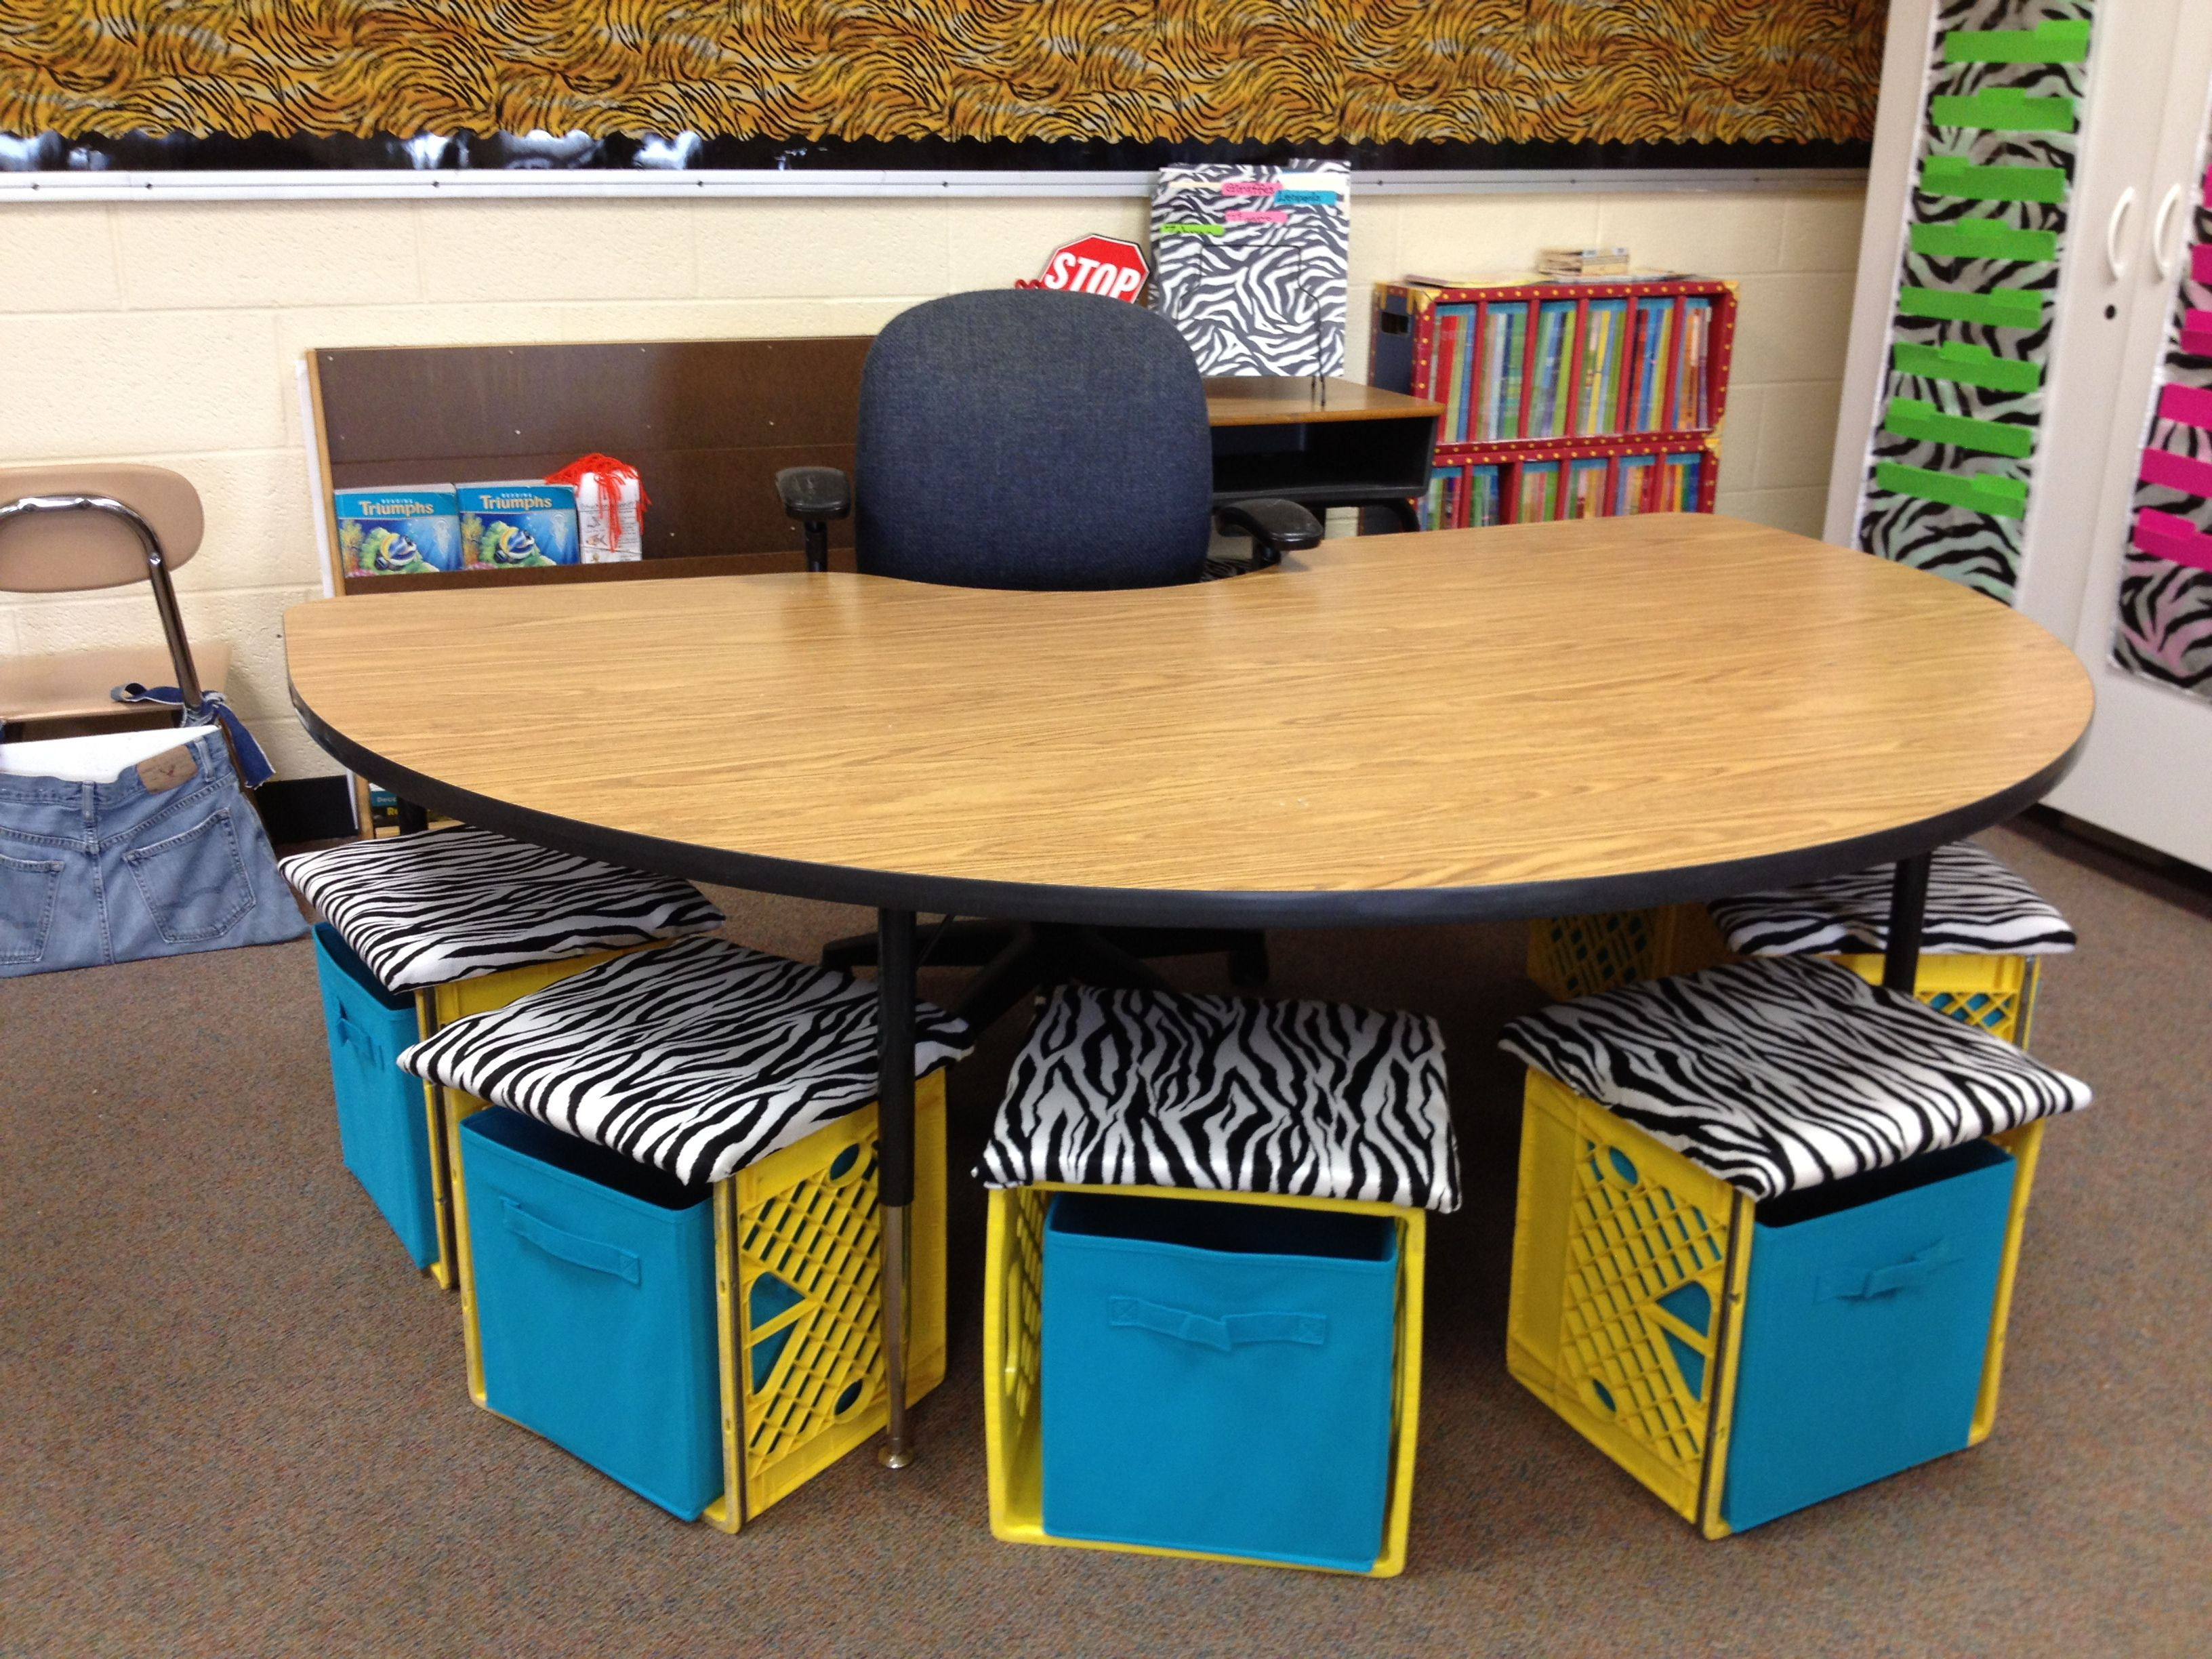 Classroom Organizer Chair Covers Wholesale Chairs And Tables For My Small Group Table Love The Storage Boxes Inside